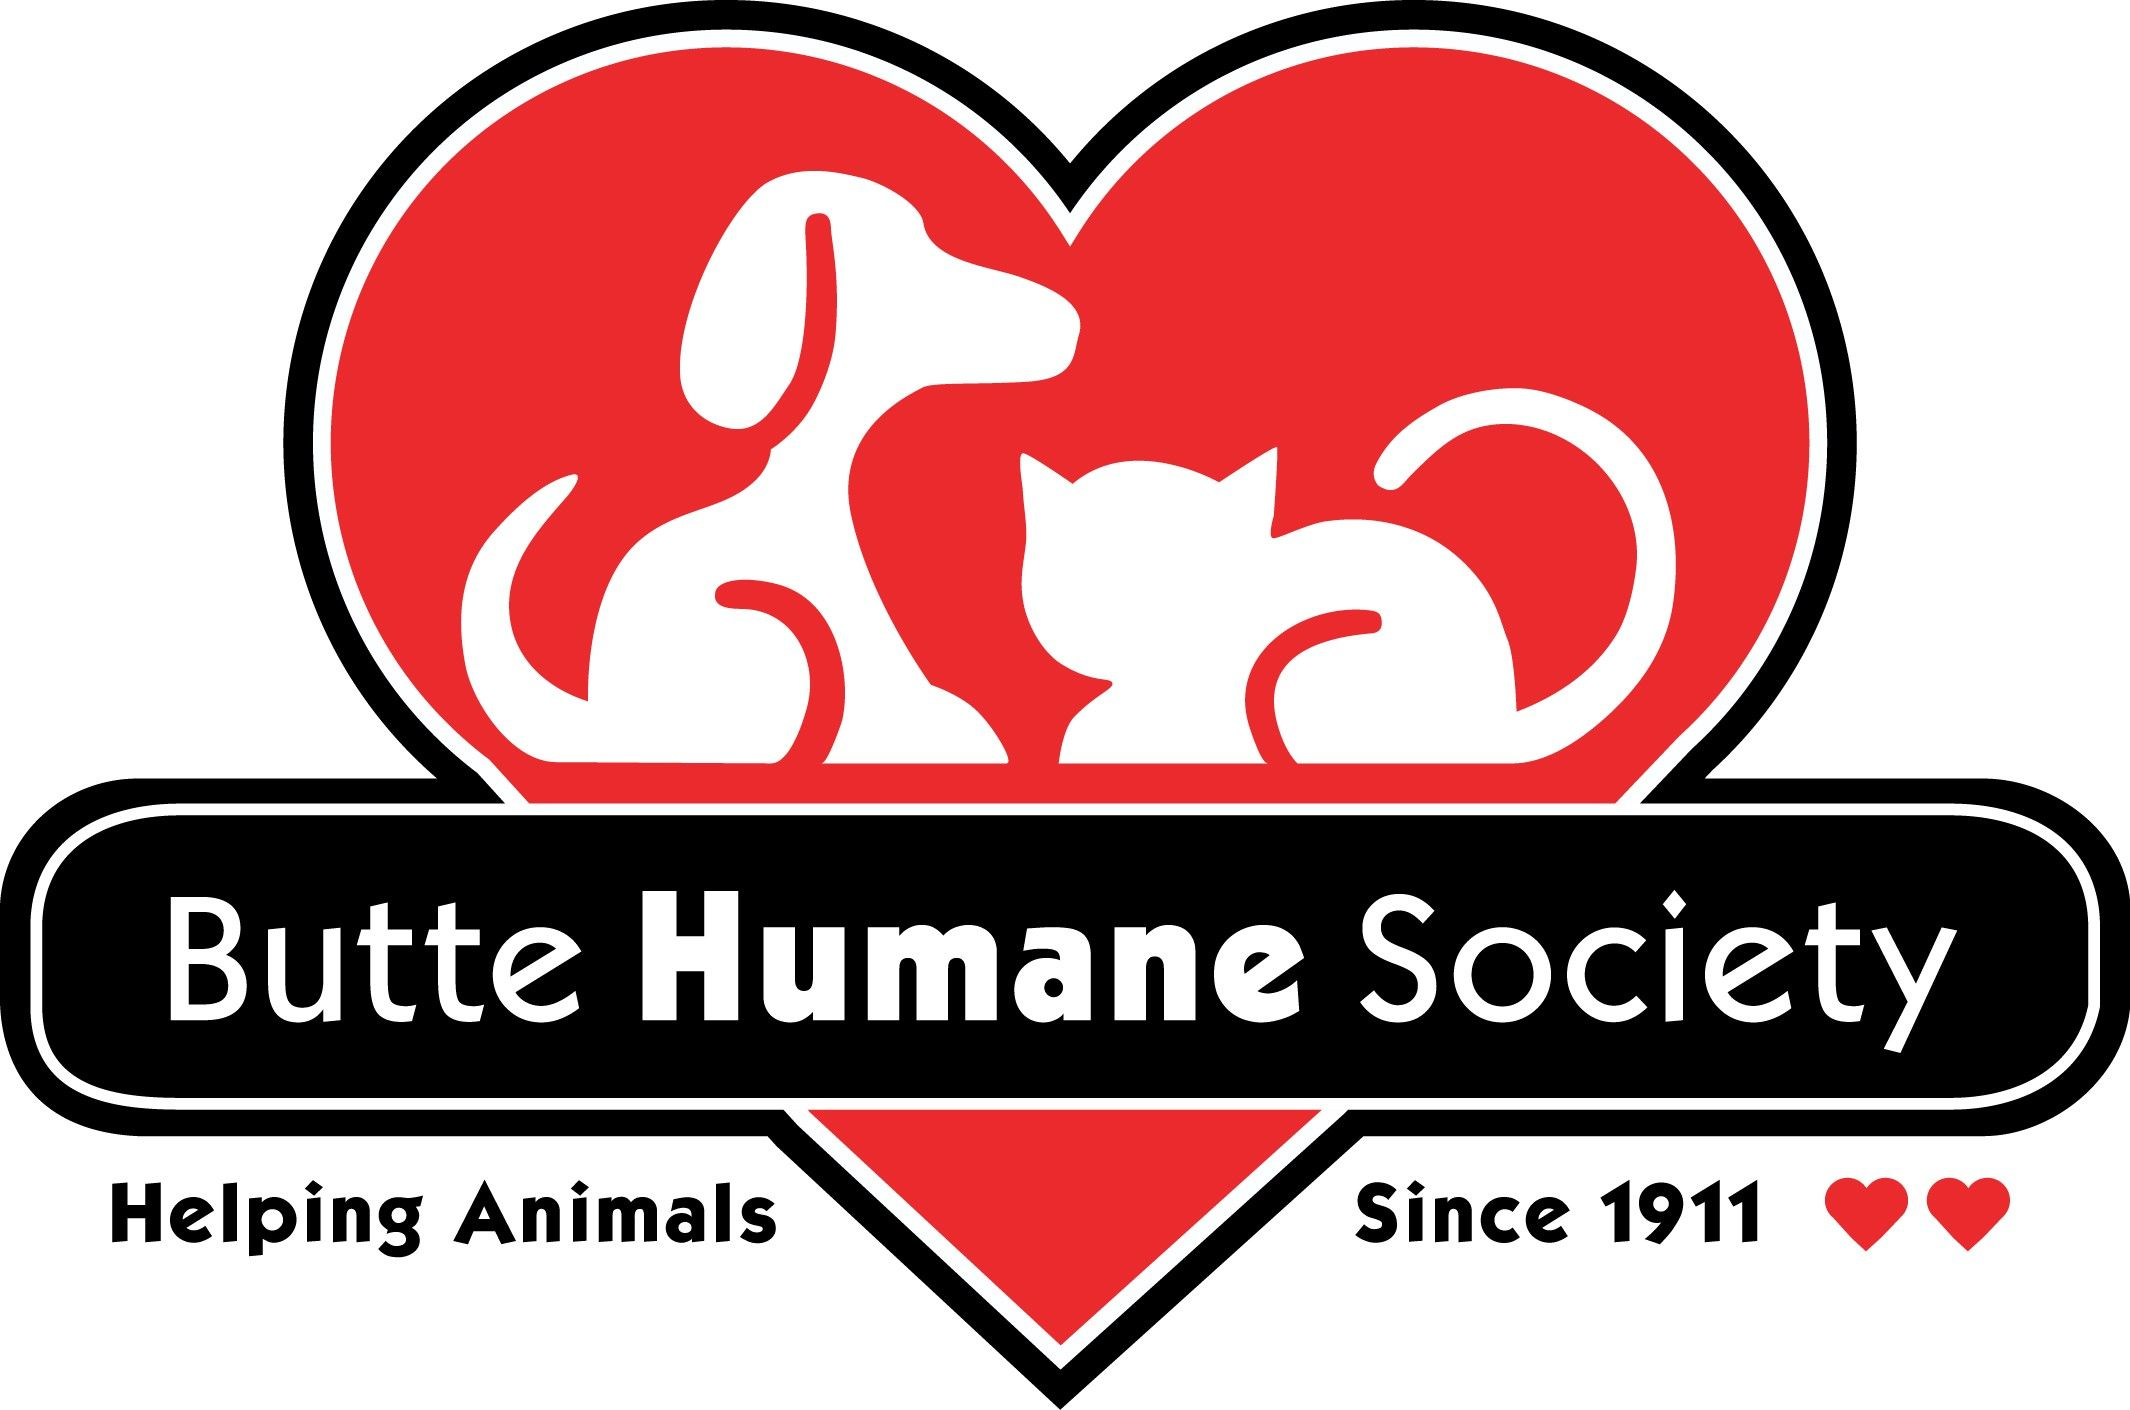 We Love The Butte Humane Society Chico Ca Logos Chico California Humane Society